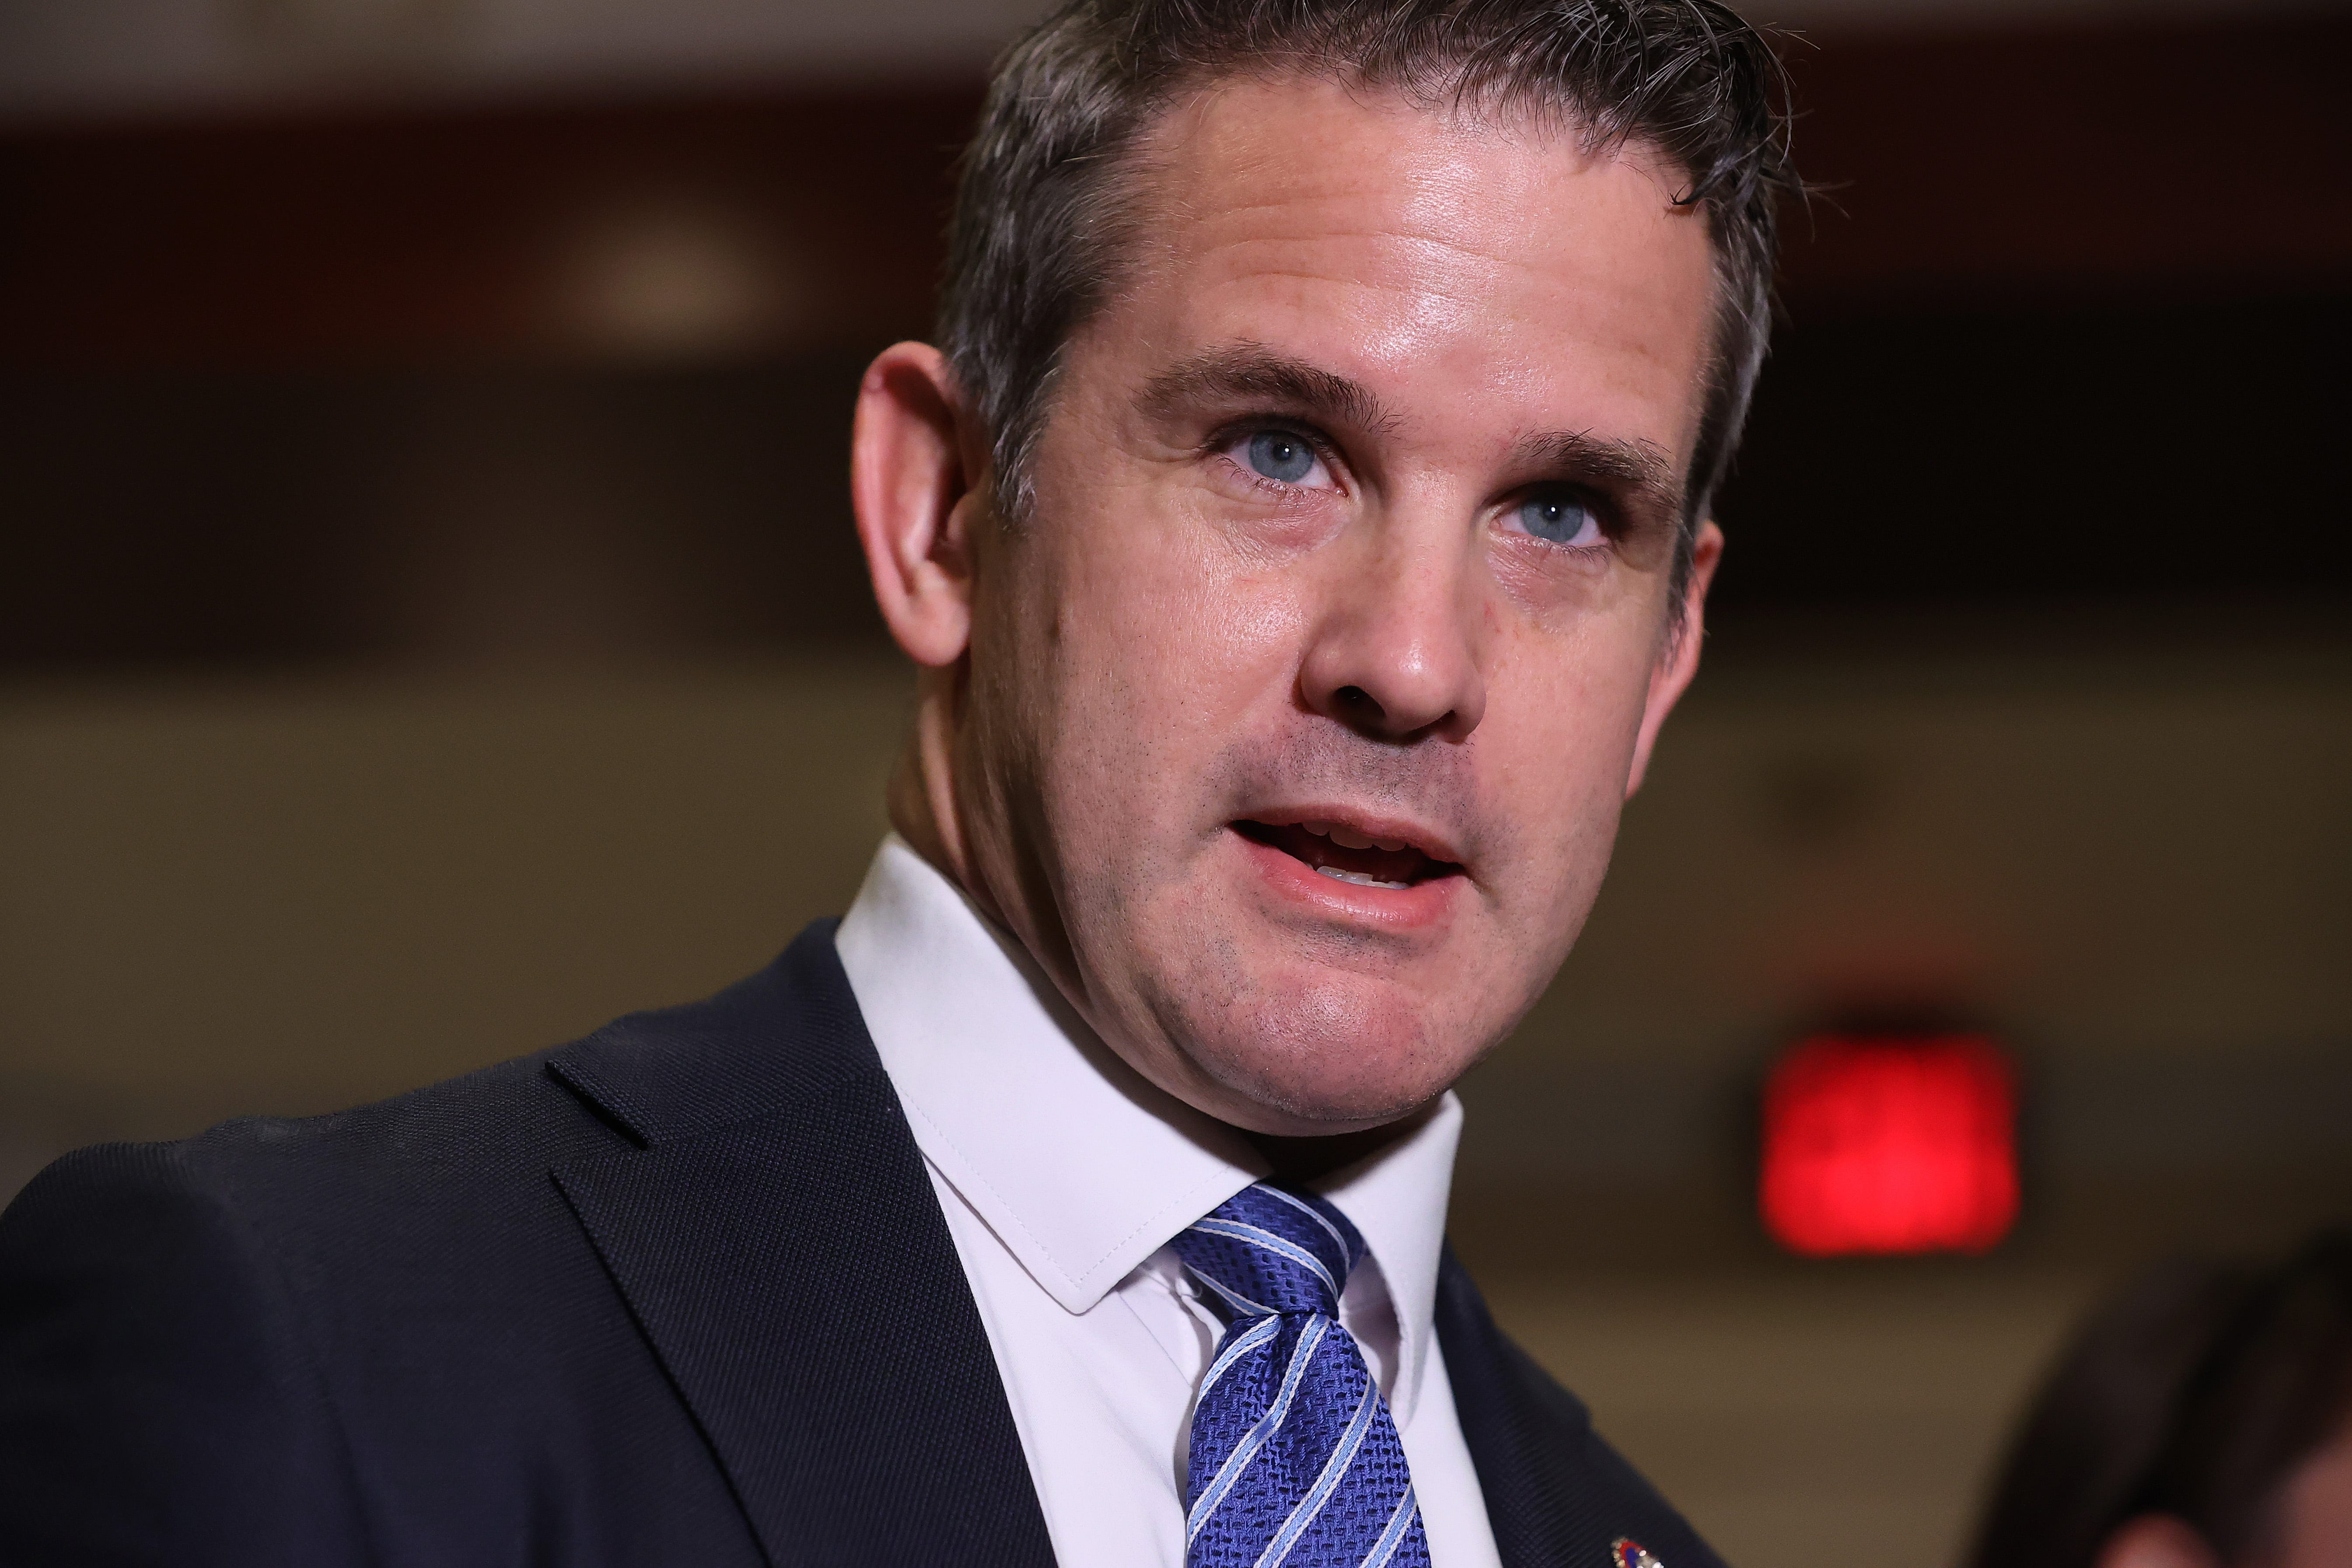 Rep. Adam Kinzinger, R-Ill., talks to reporters following a House Republican conference meeting in the U.S. Capitol Visitors Center on May 12.